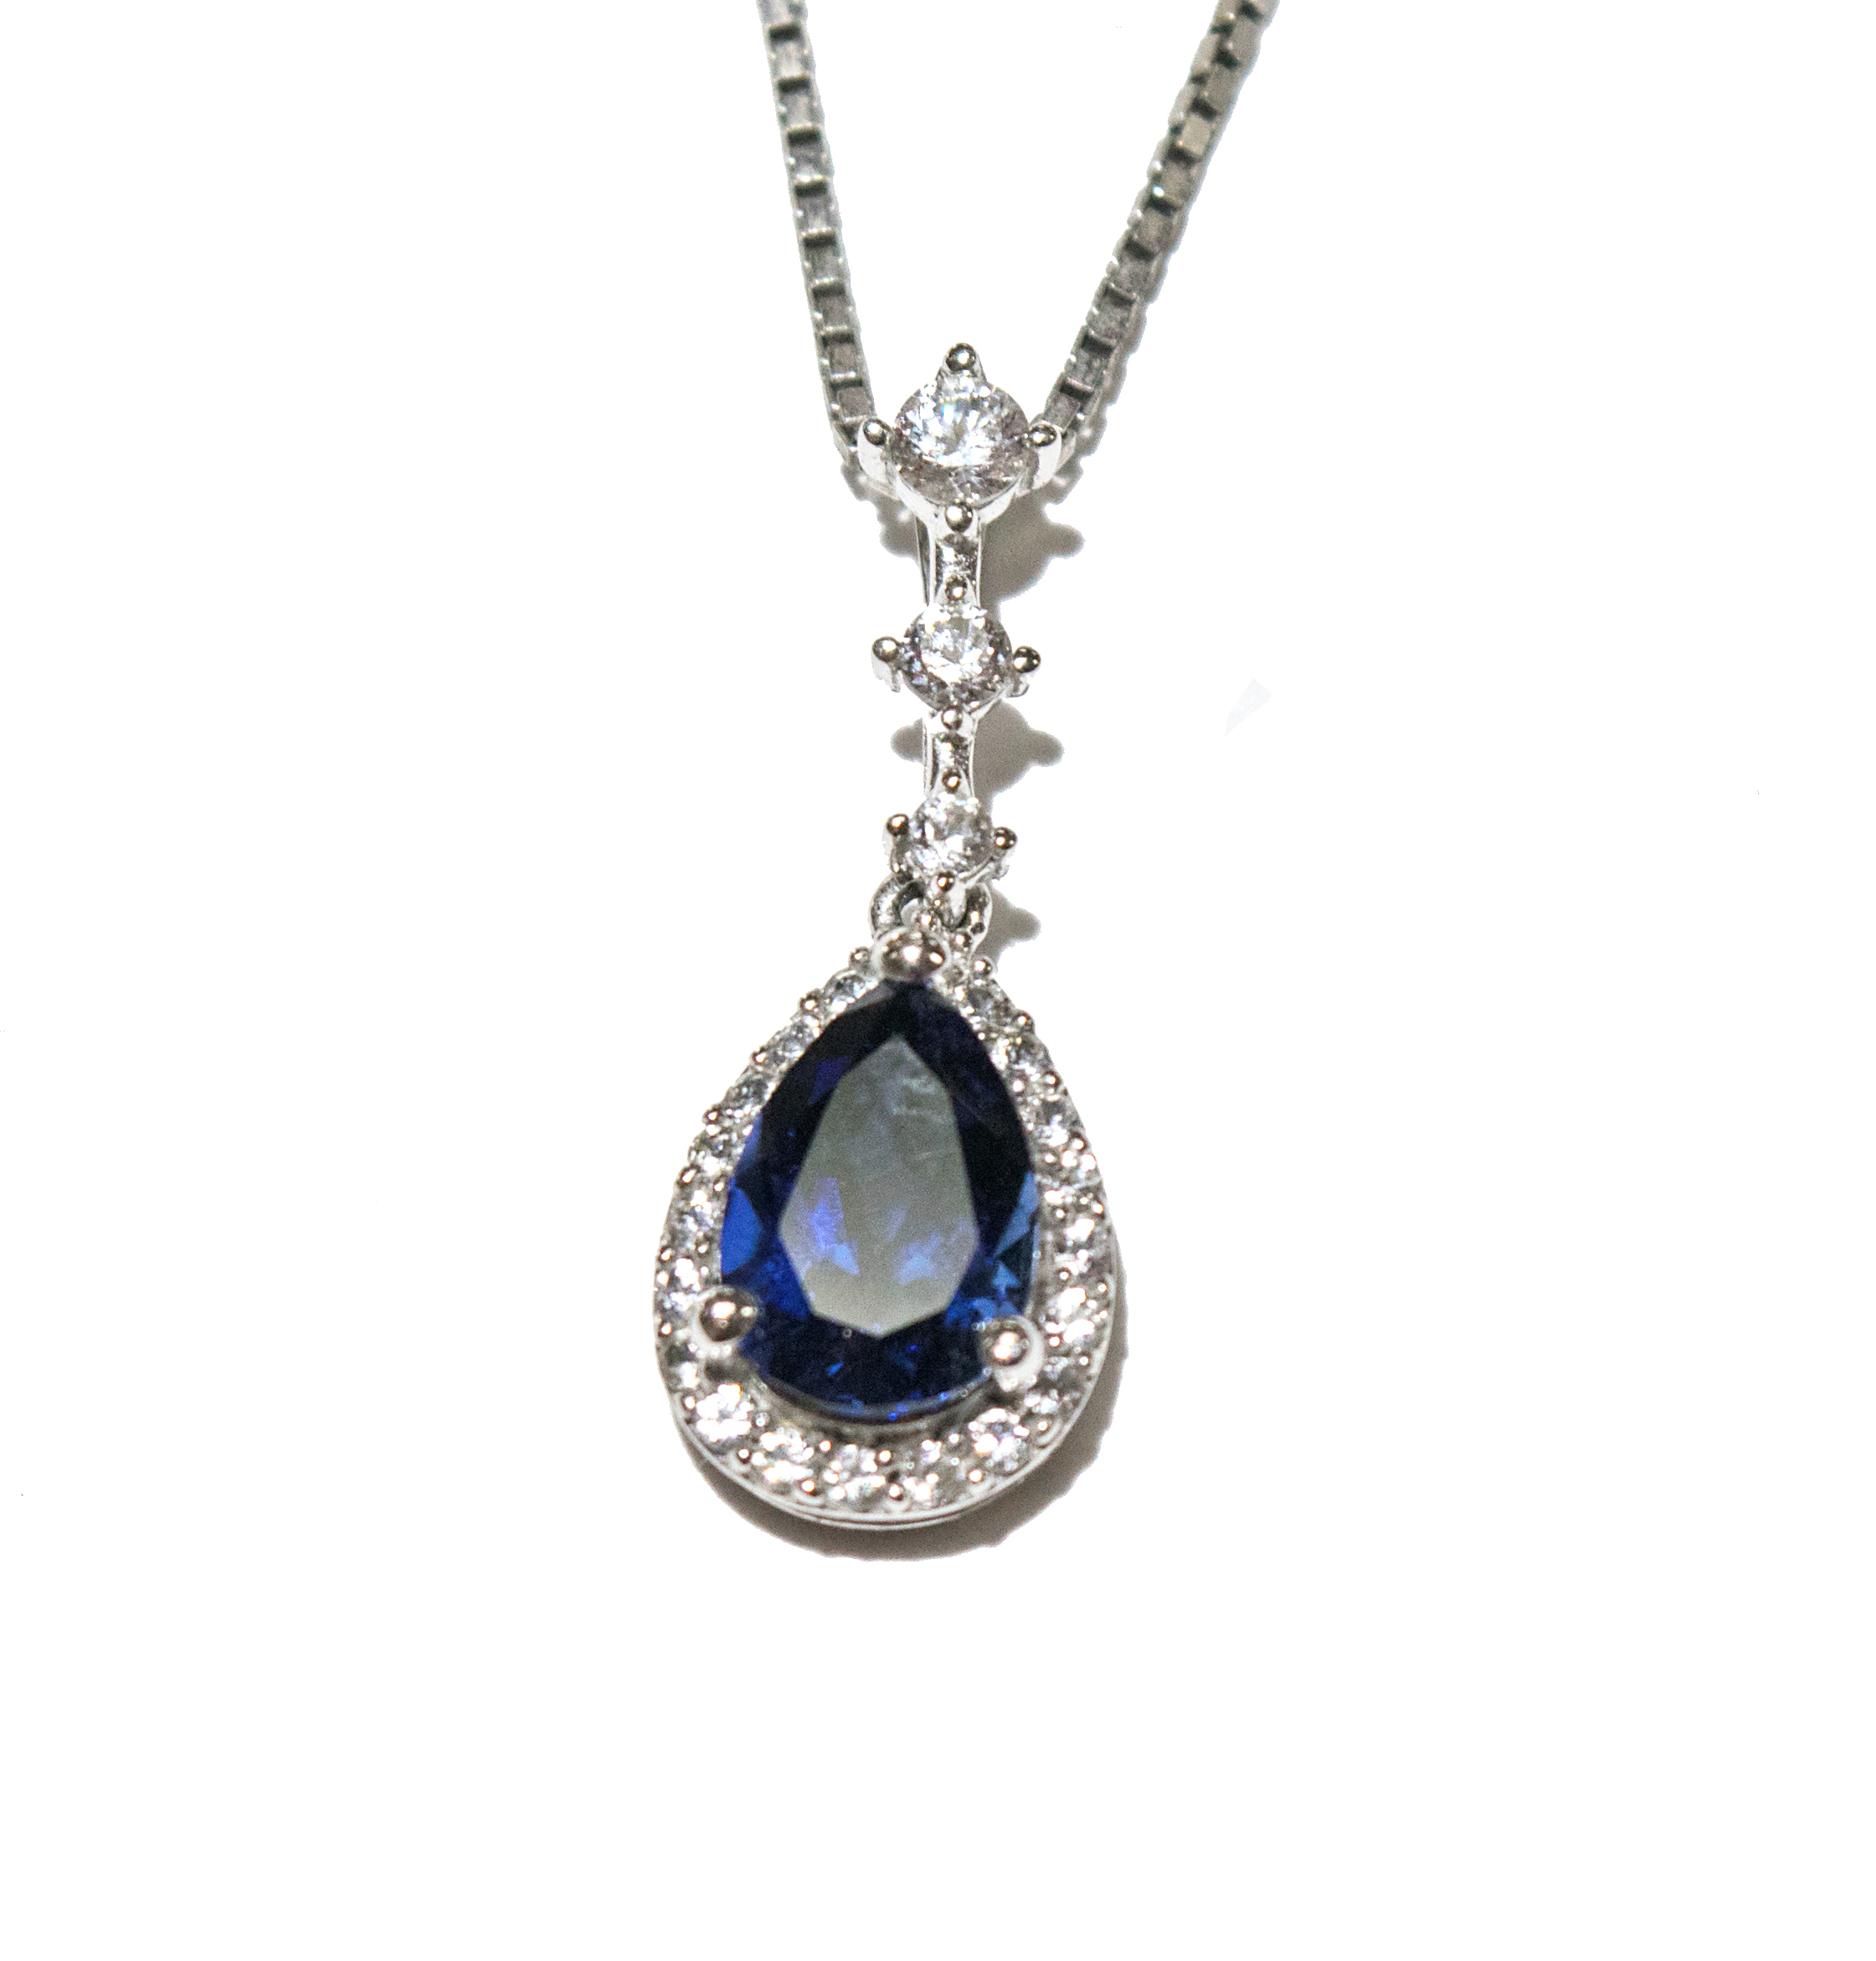 fcee329361f Pear Shaped Blue Sapphire Pendant with White Sapphire Halo. Pear Dangle  with Halo.jpg